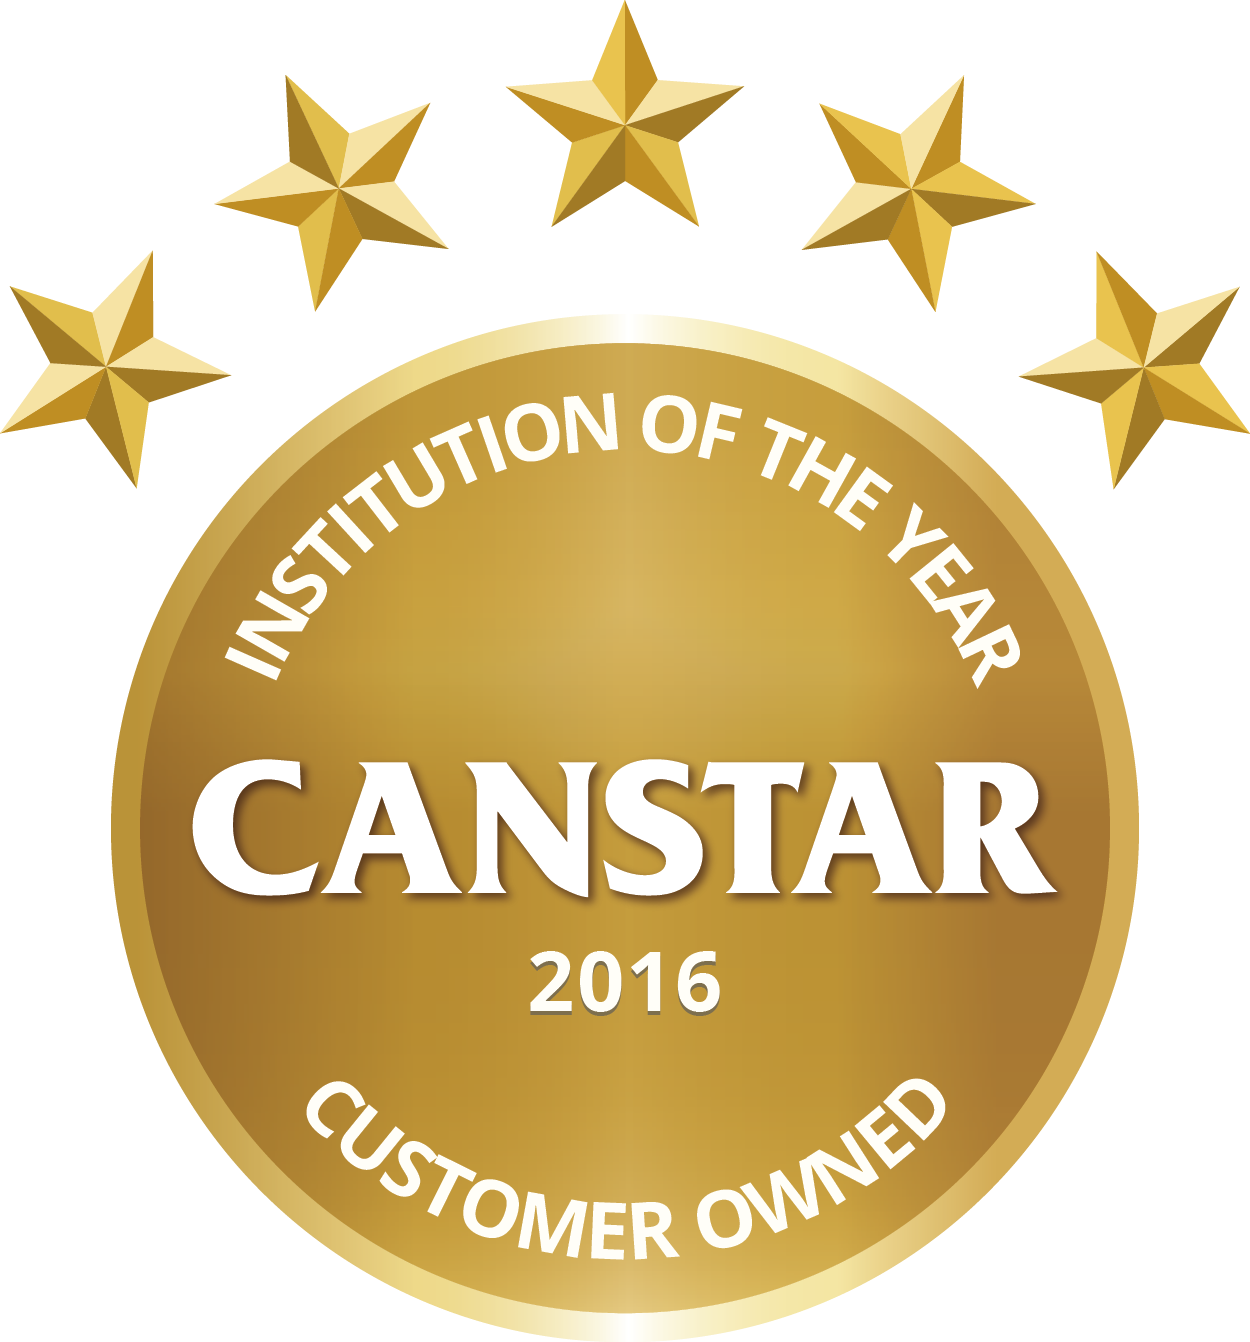 CANSTAR 2016 – Institution of the year – customer owned